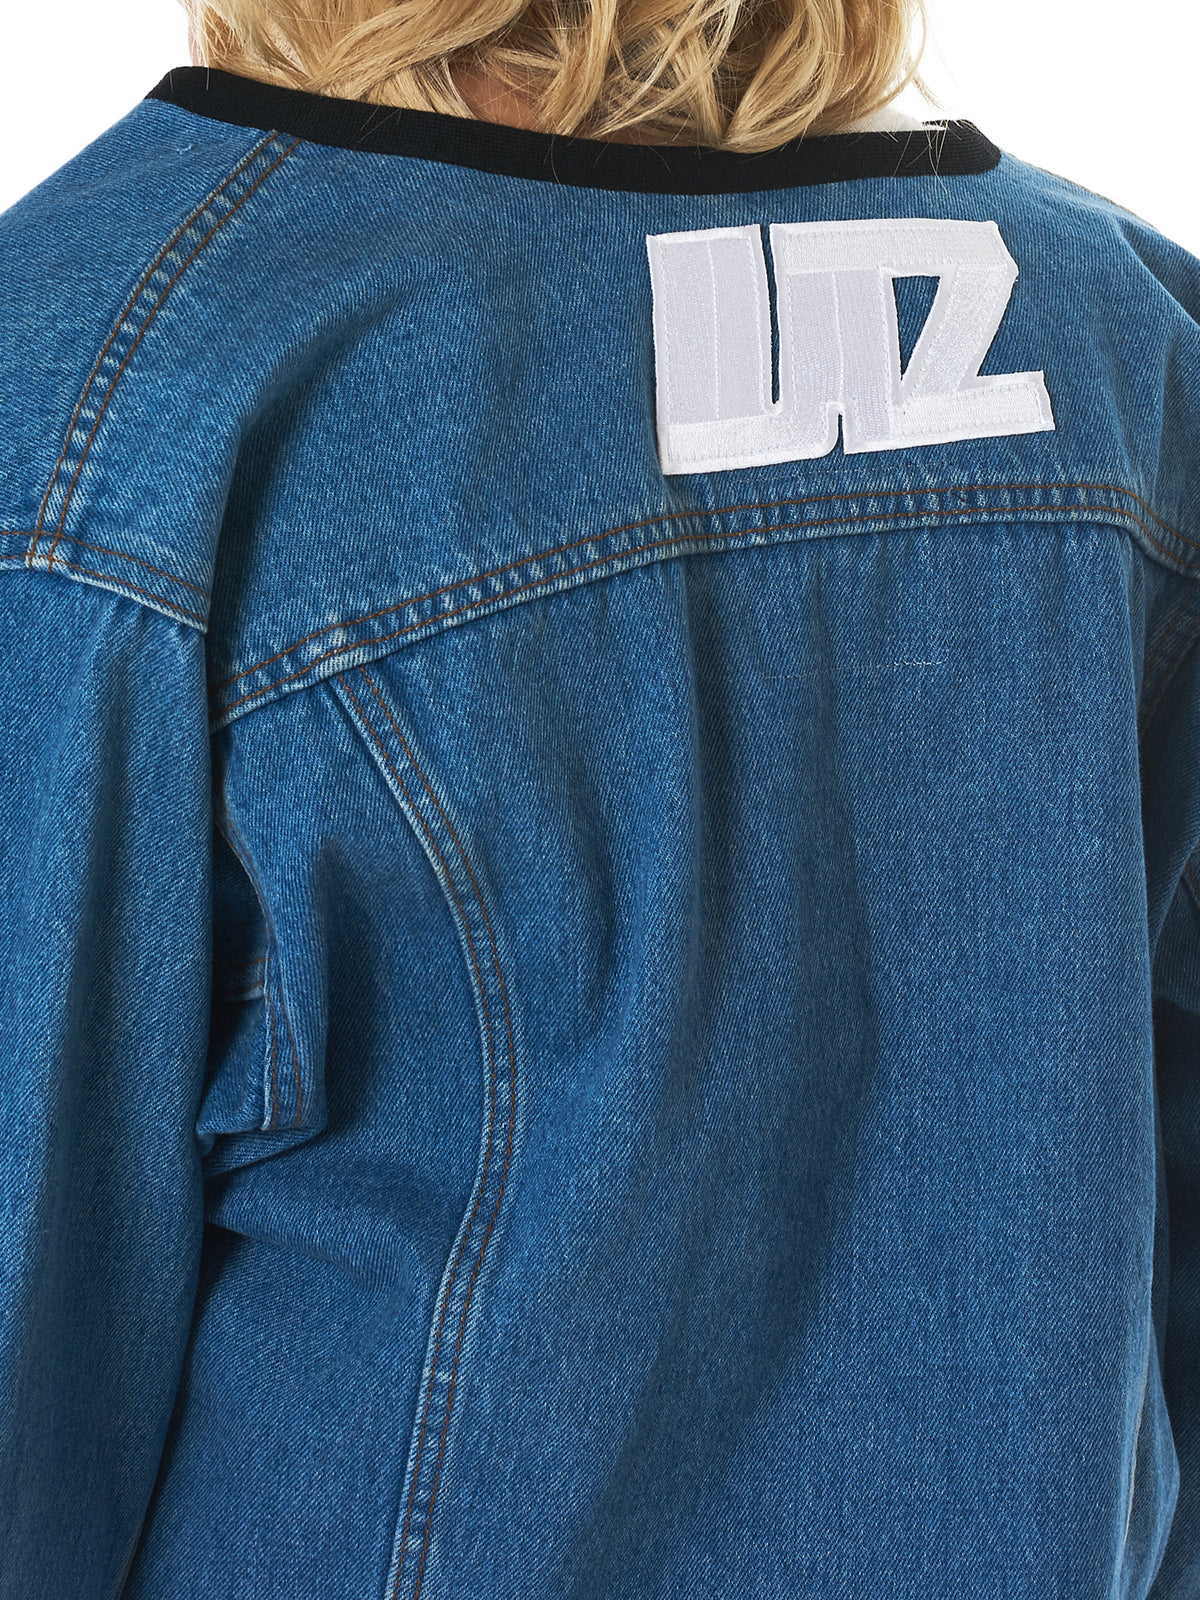 Lutz Huelle Denim Jacket - Hlorenzo Detail 2